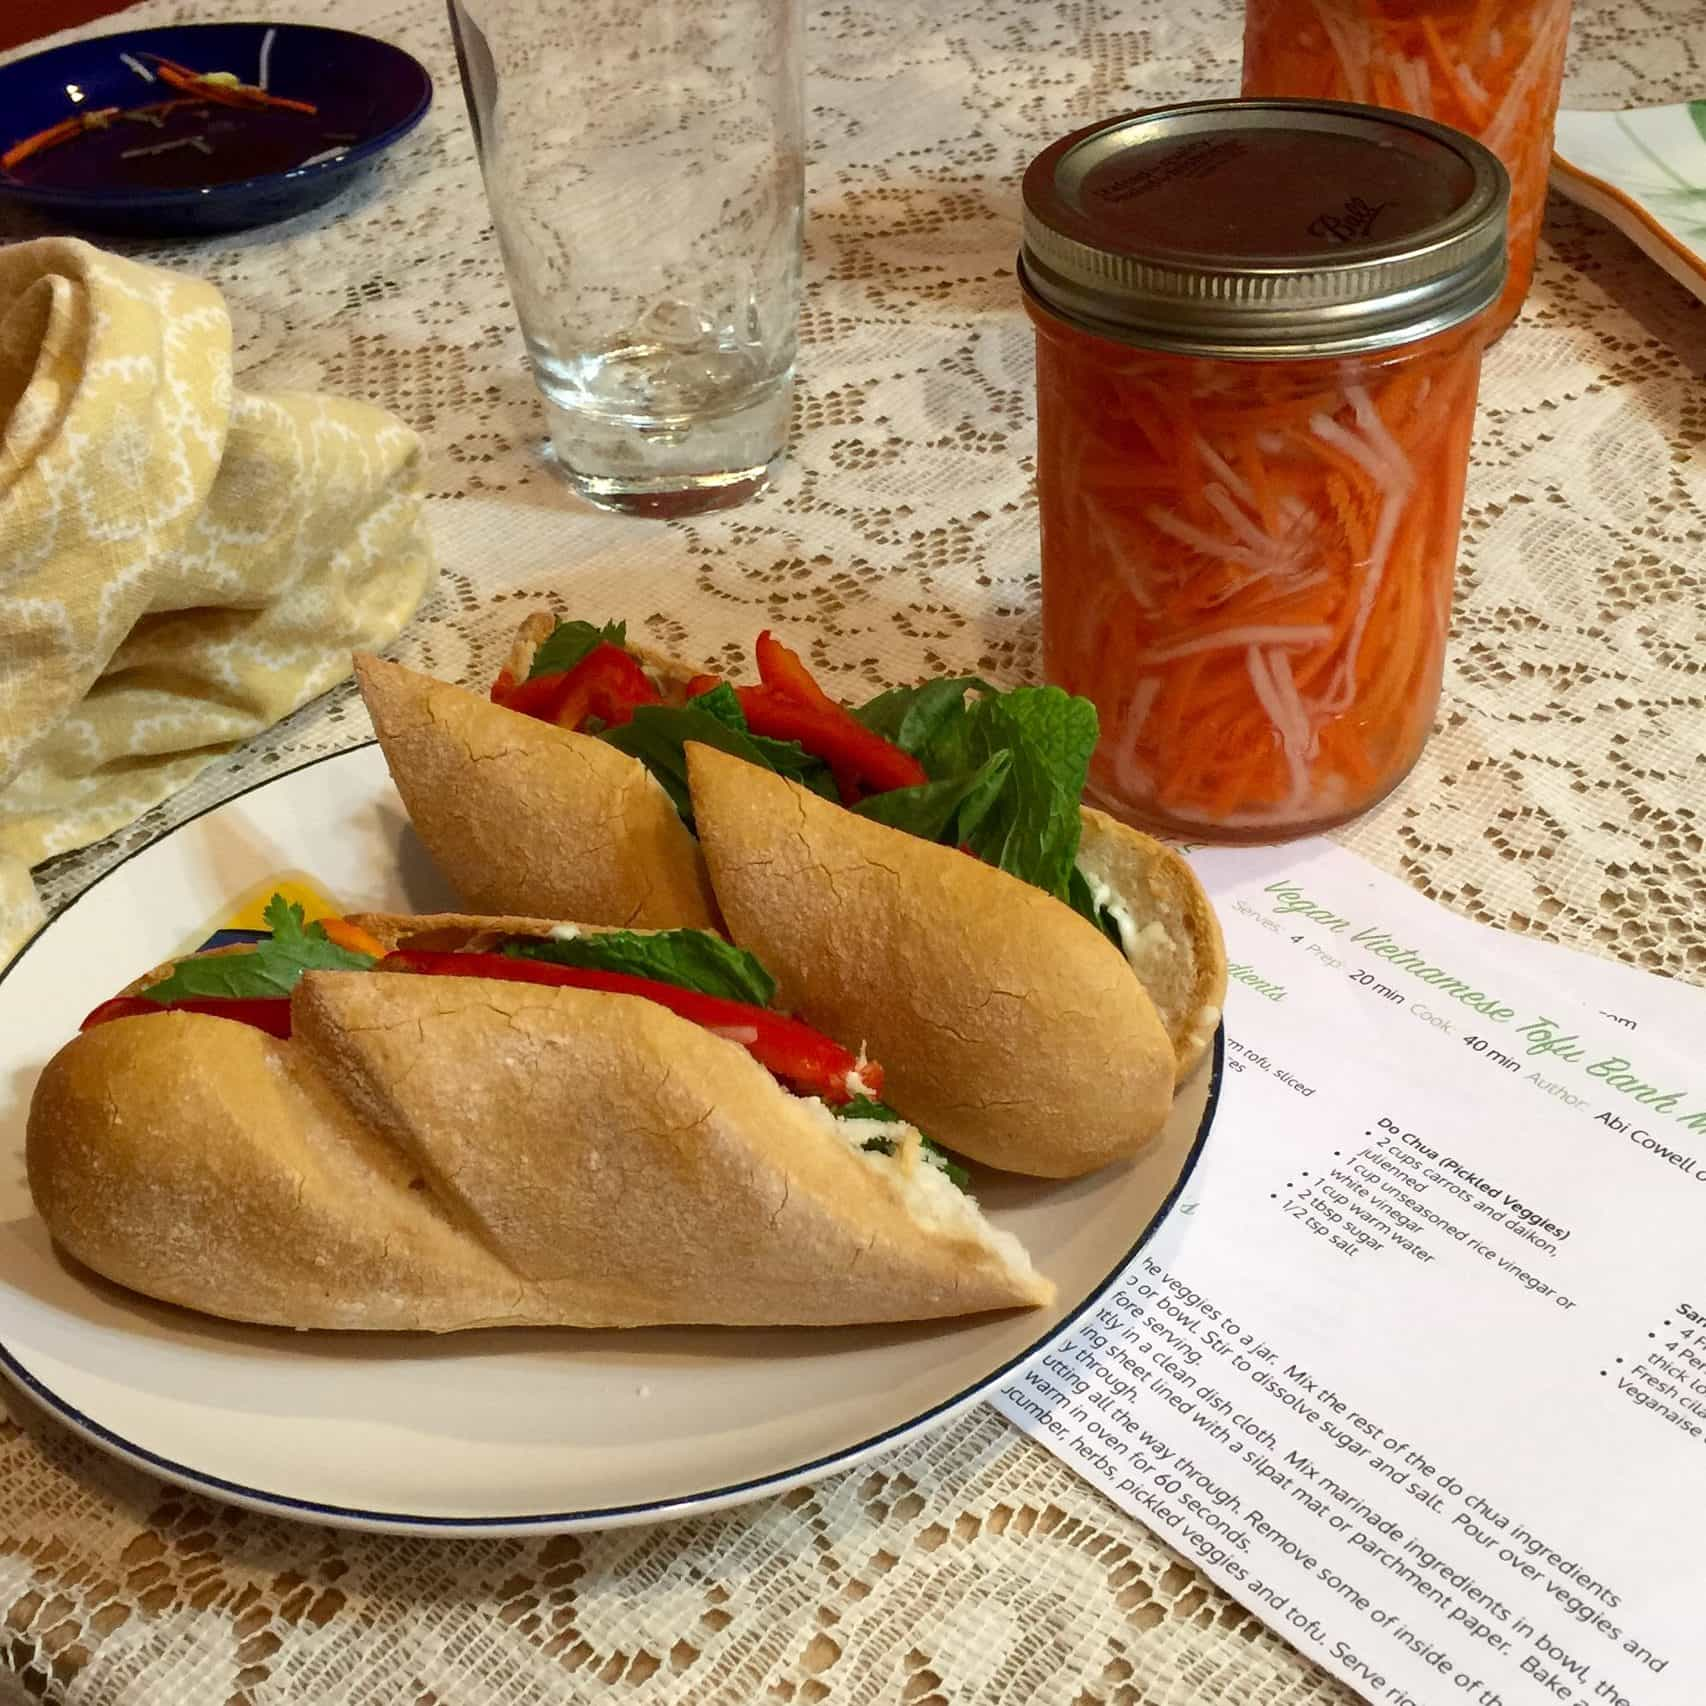 vietnamese banh mi do chua pickled carrot and daikon on gluten free bread